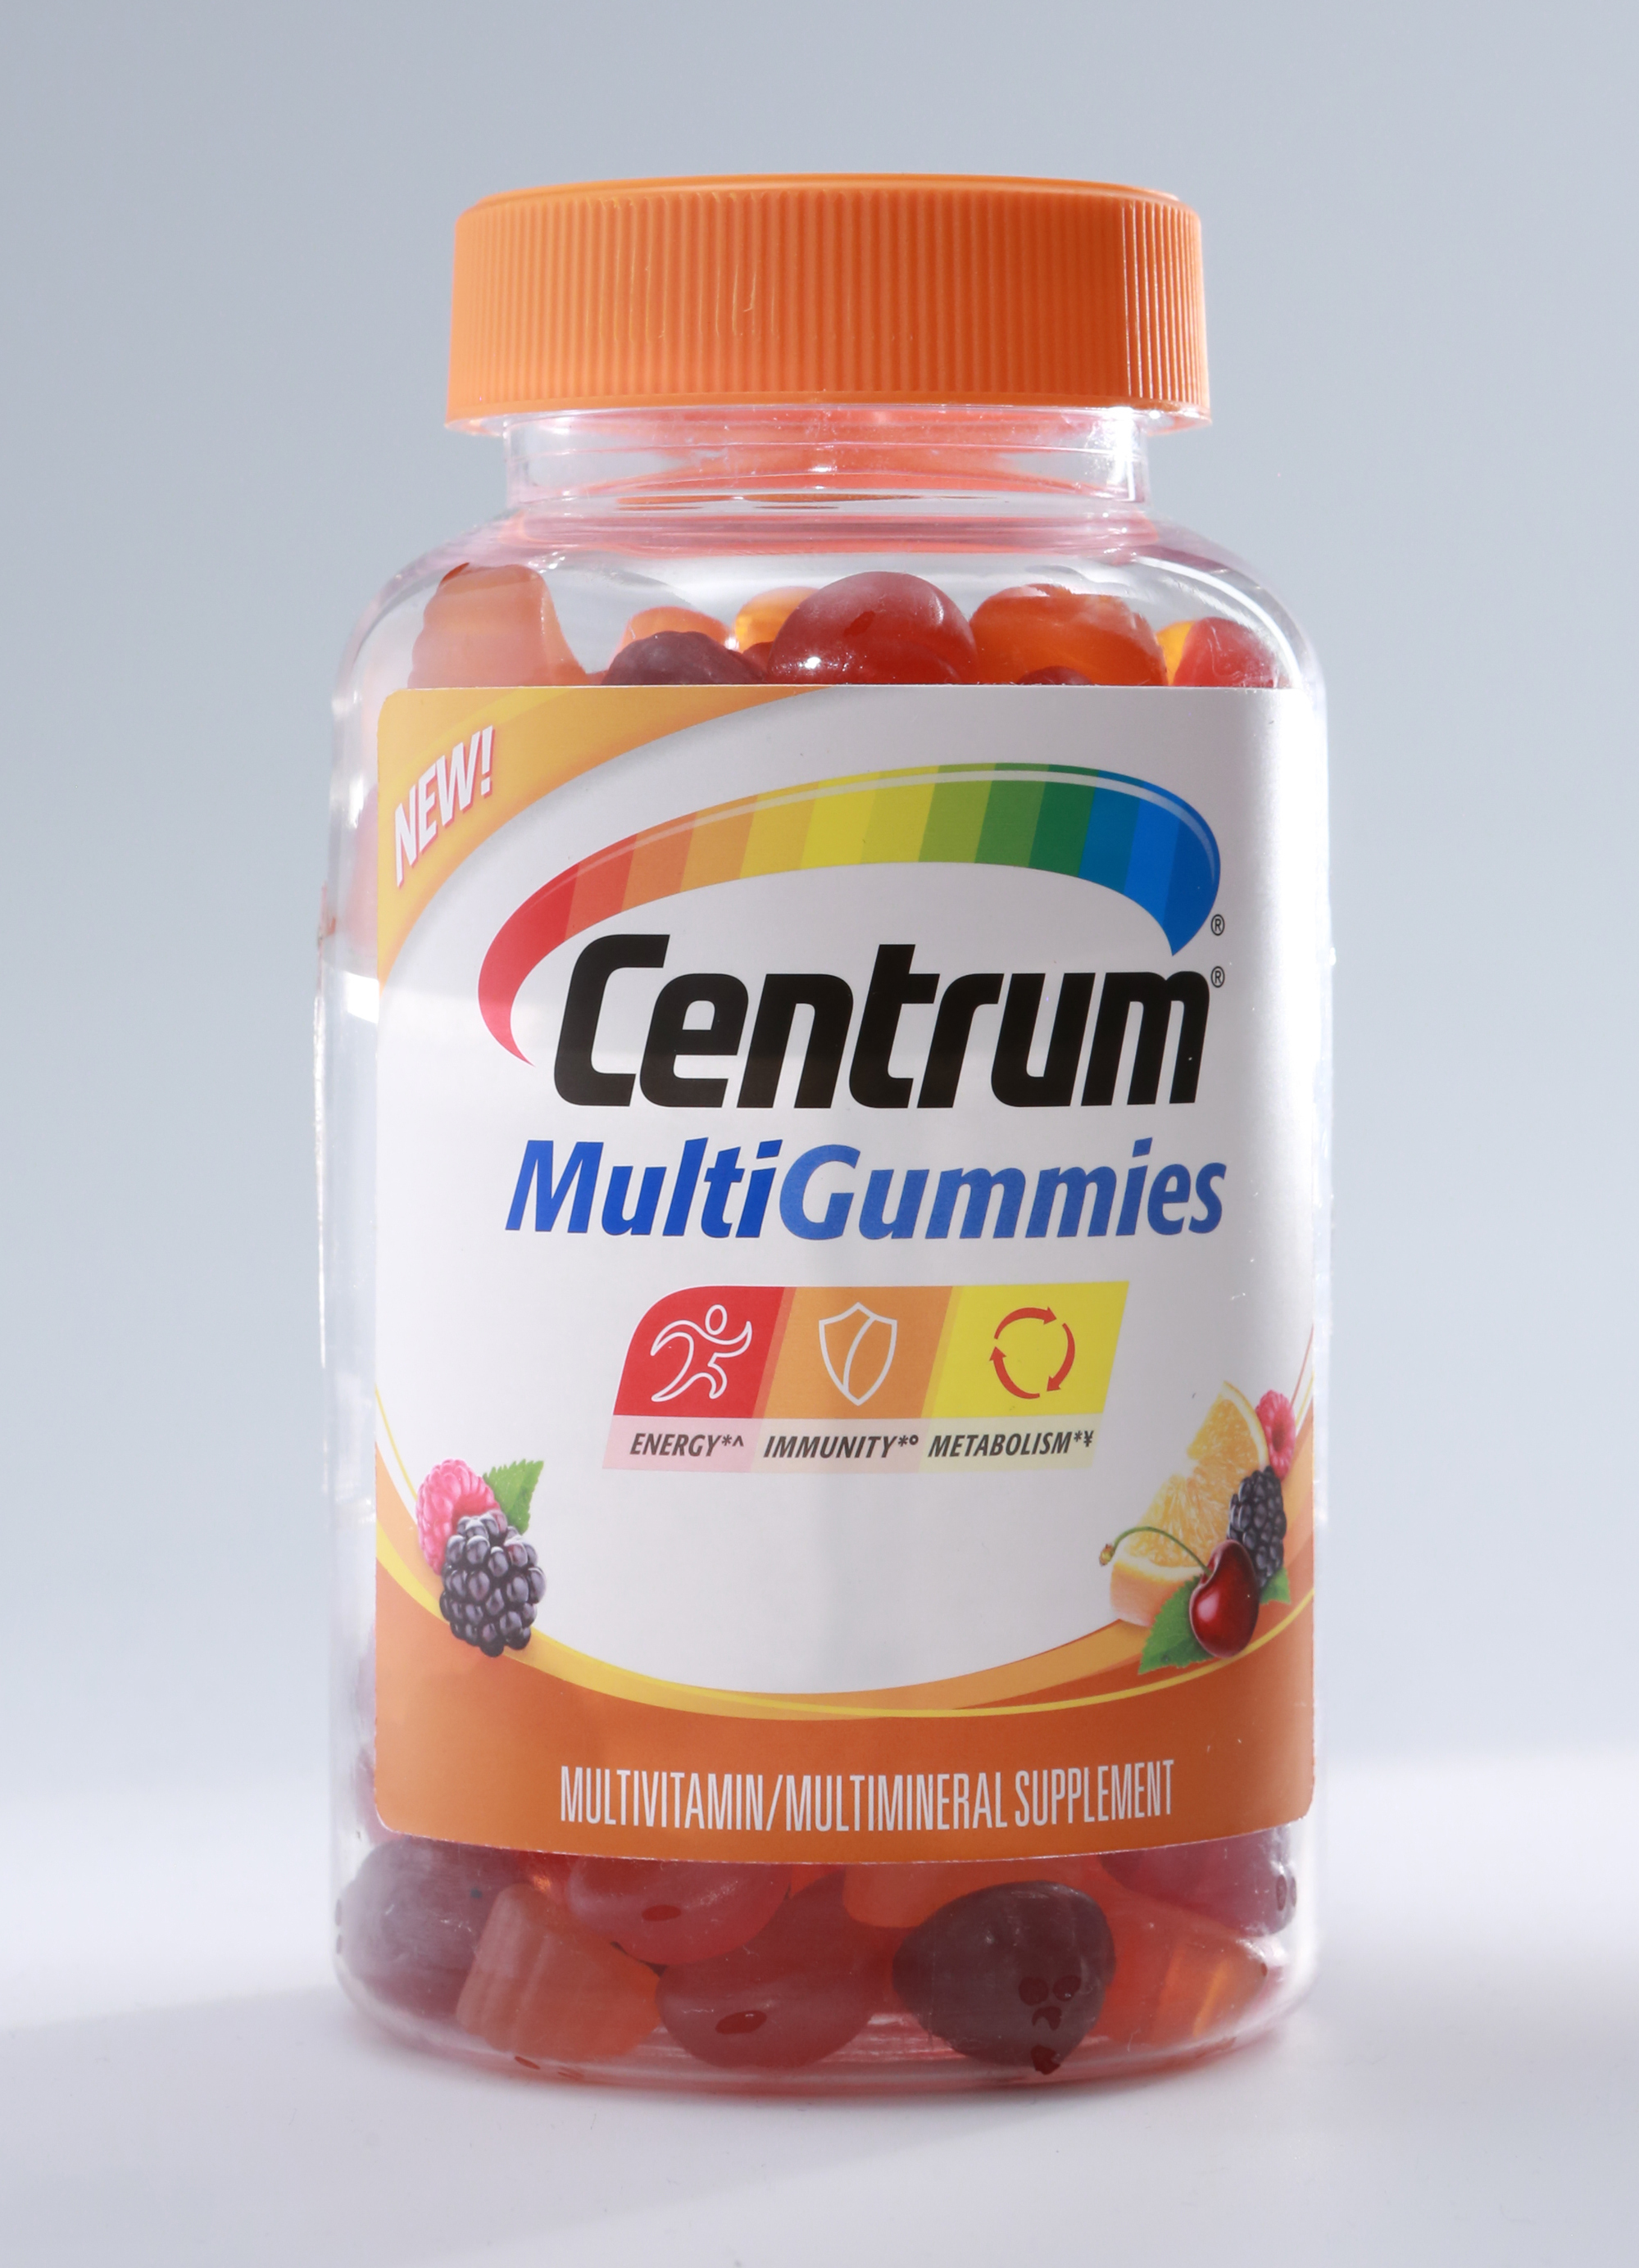 America's Most-Preferred Multivitamin Brand Launches New